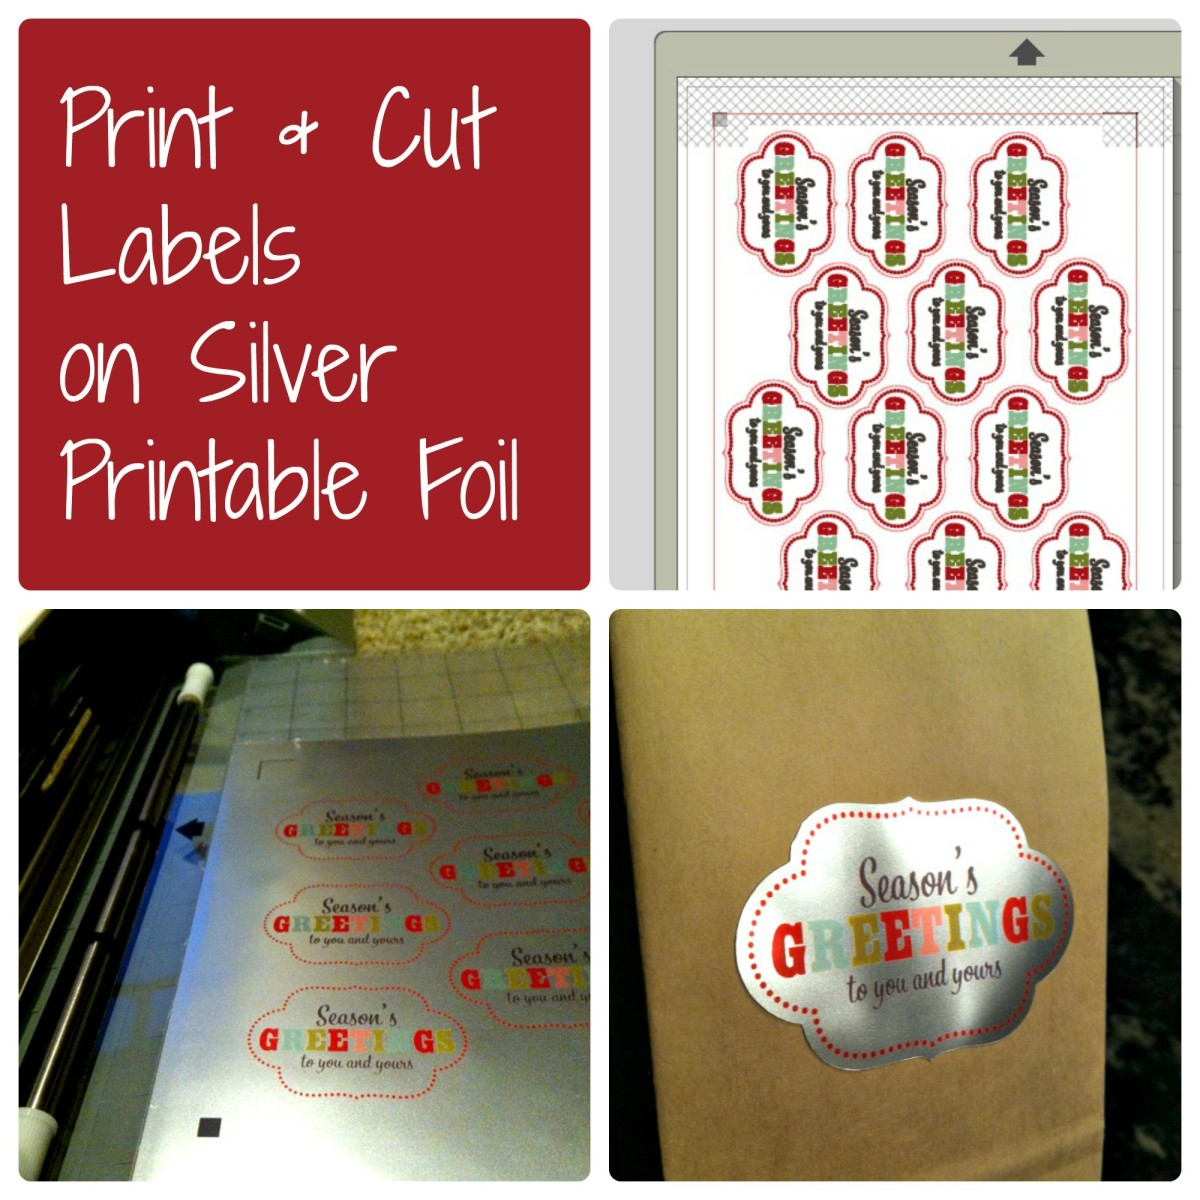 Print and Cut Label Project - Silhouette CAMEO - TodaysMama.com